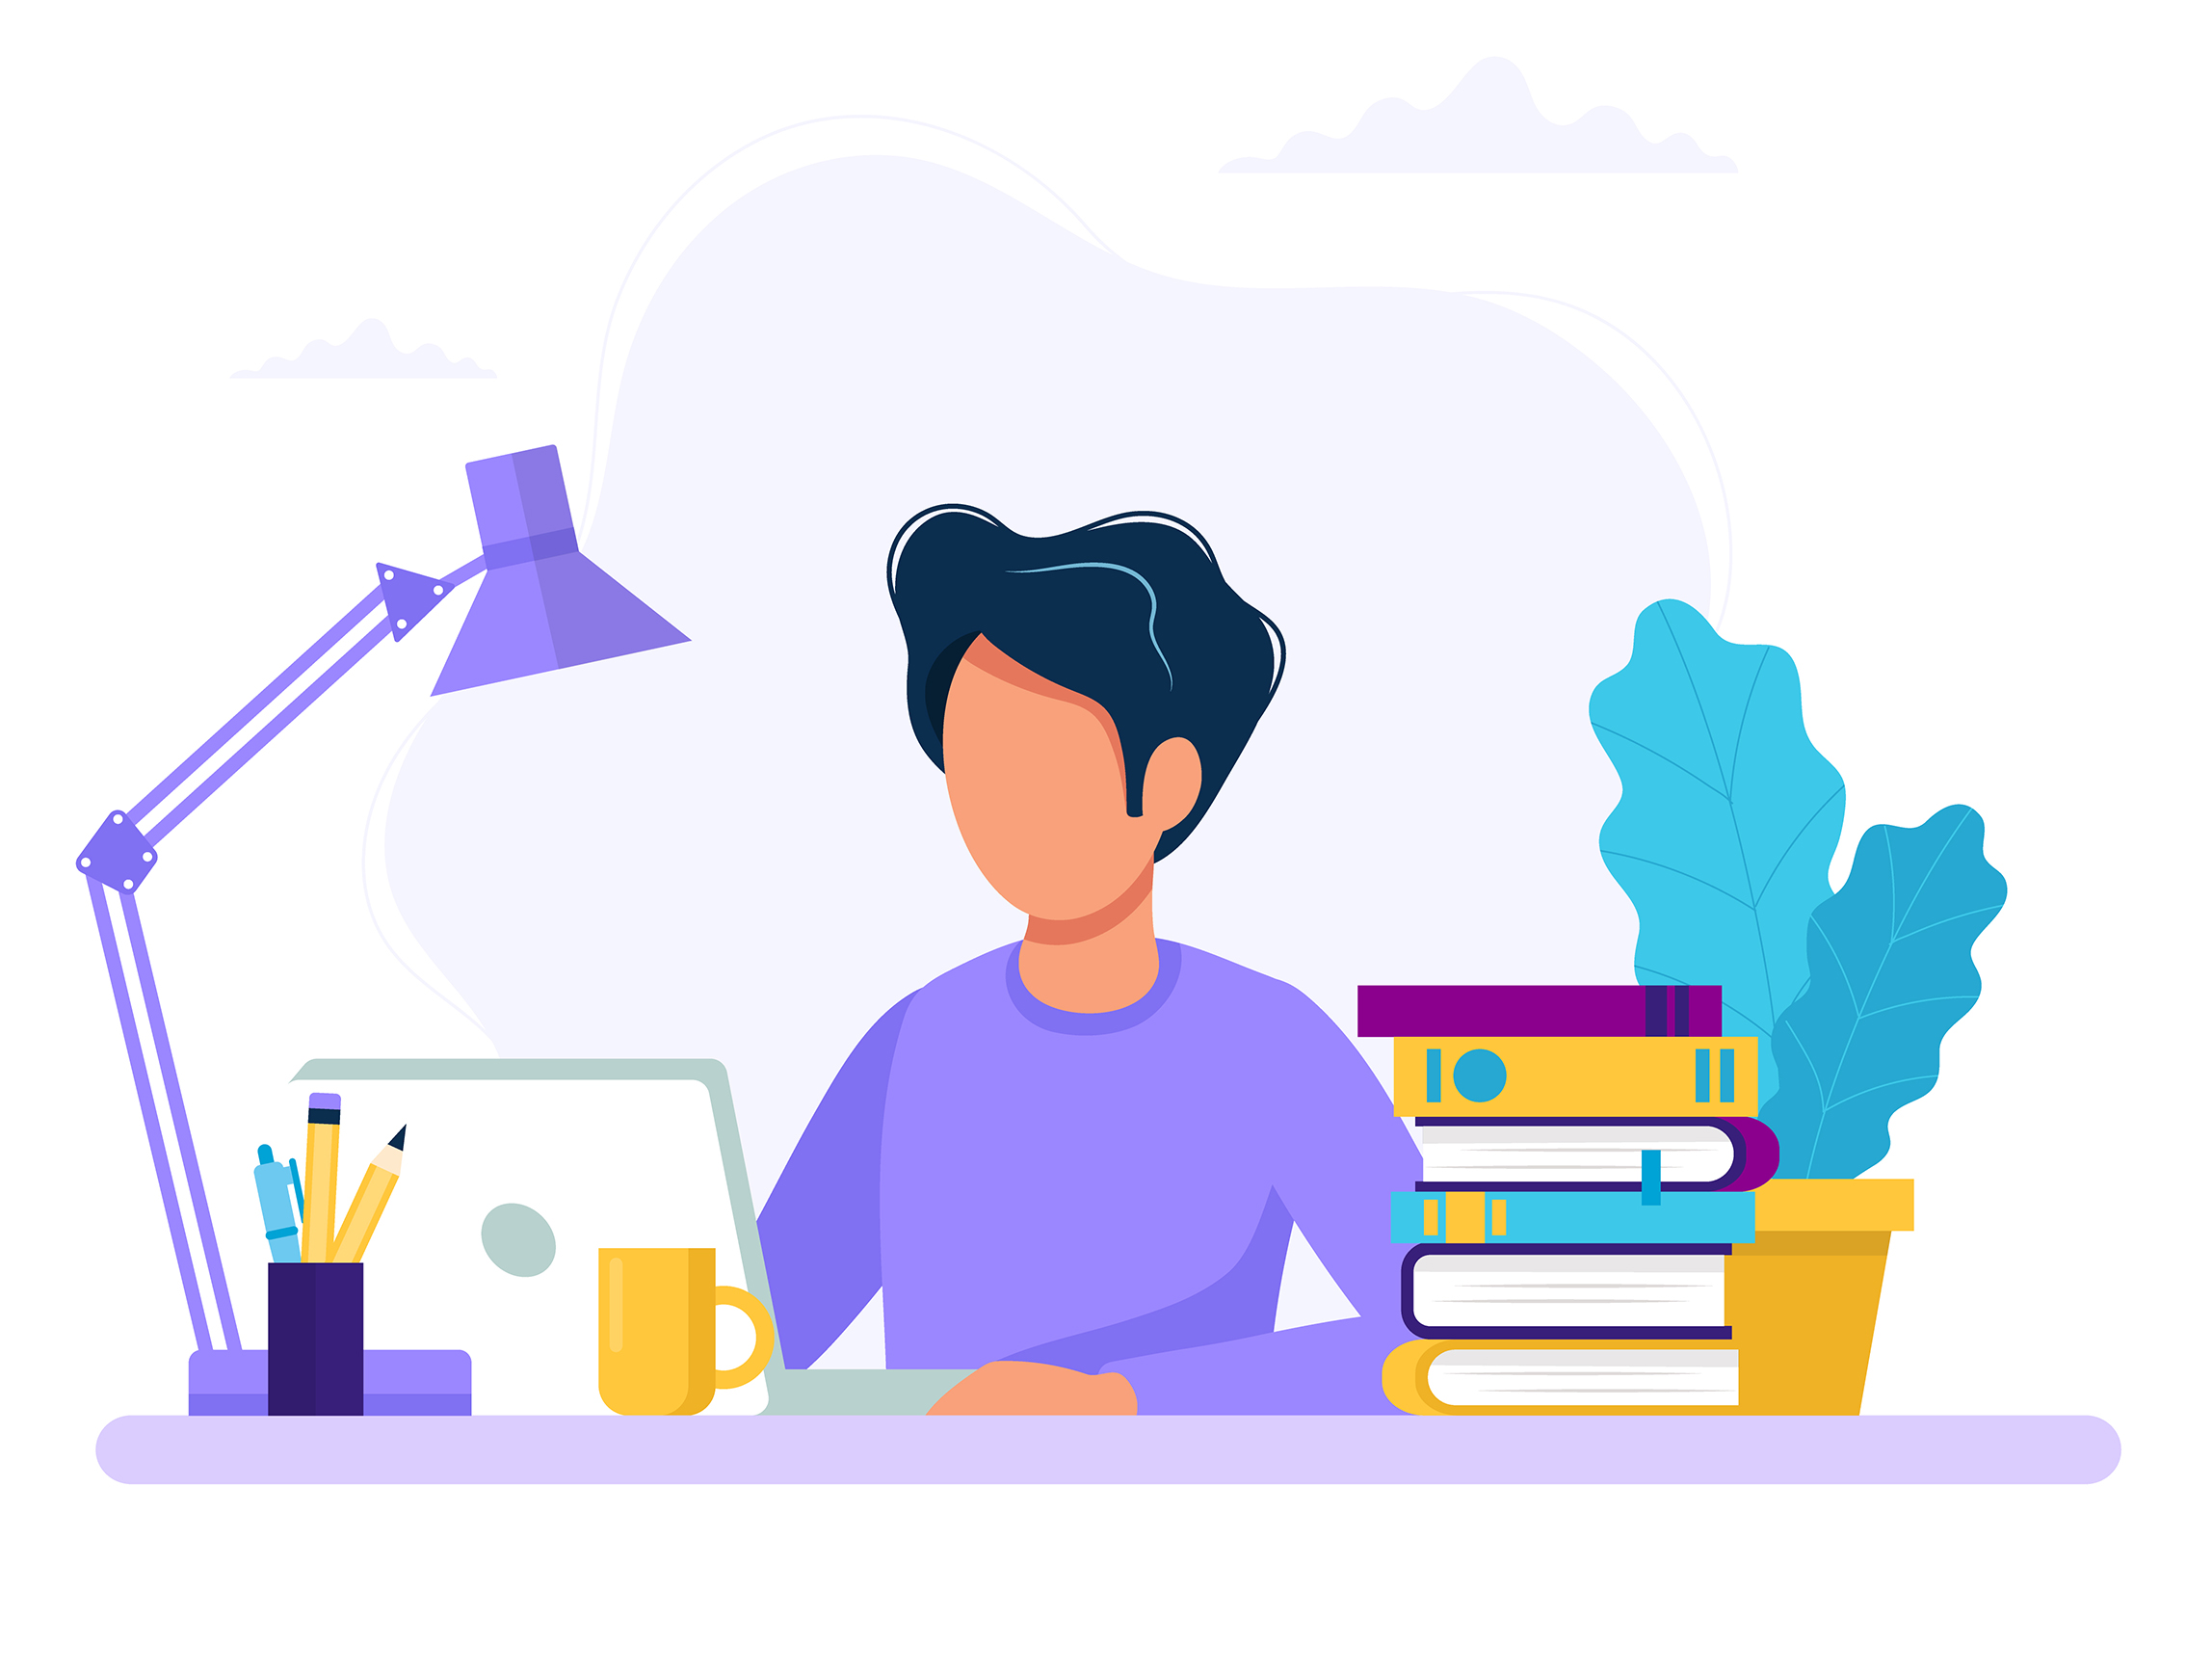 Man with laptop, education or working concept. Table with books, lamp, coffee cup. Vector illustration in flat style